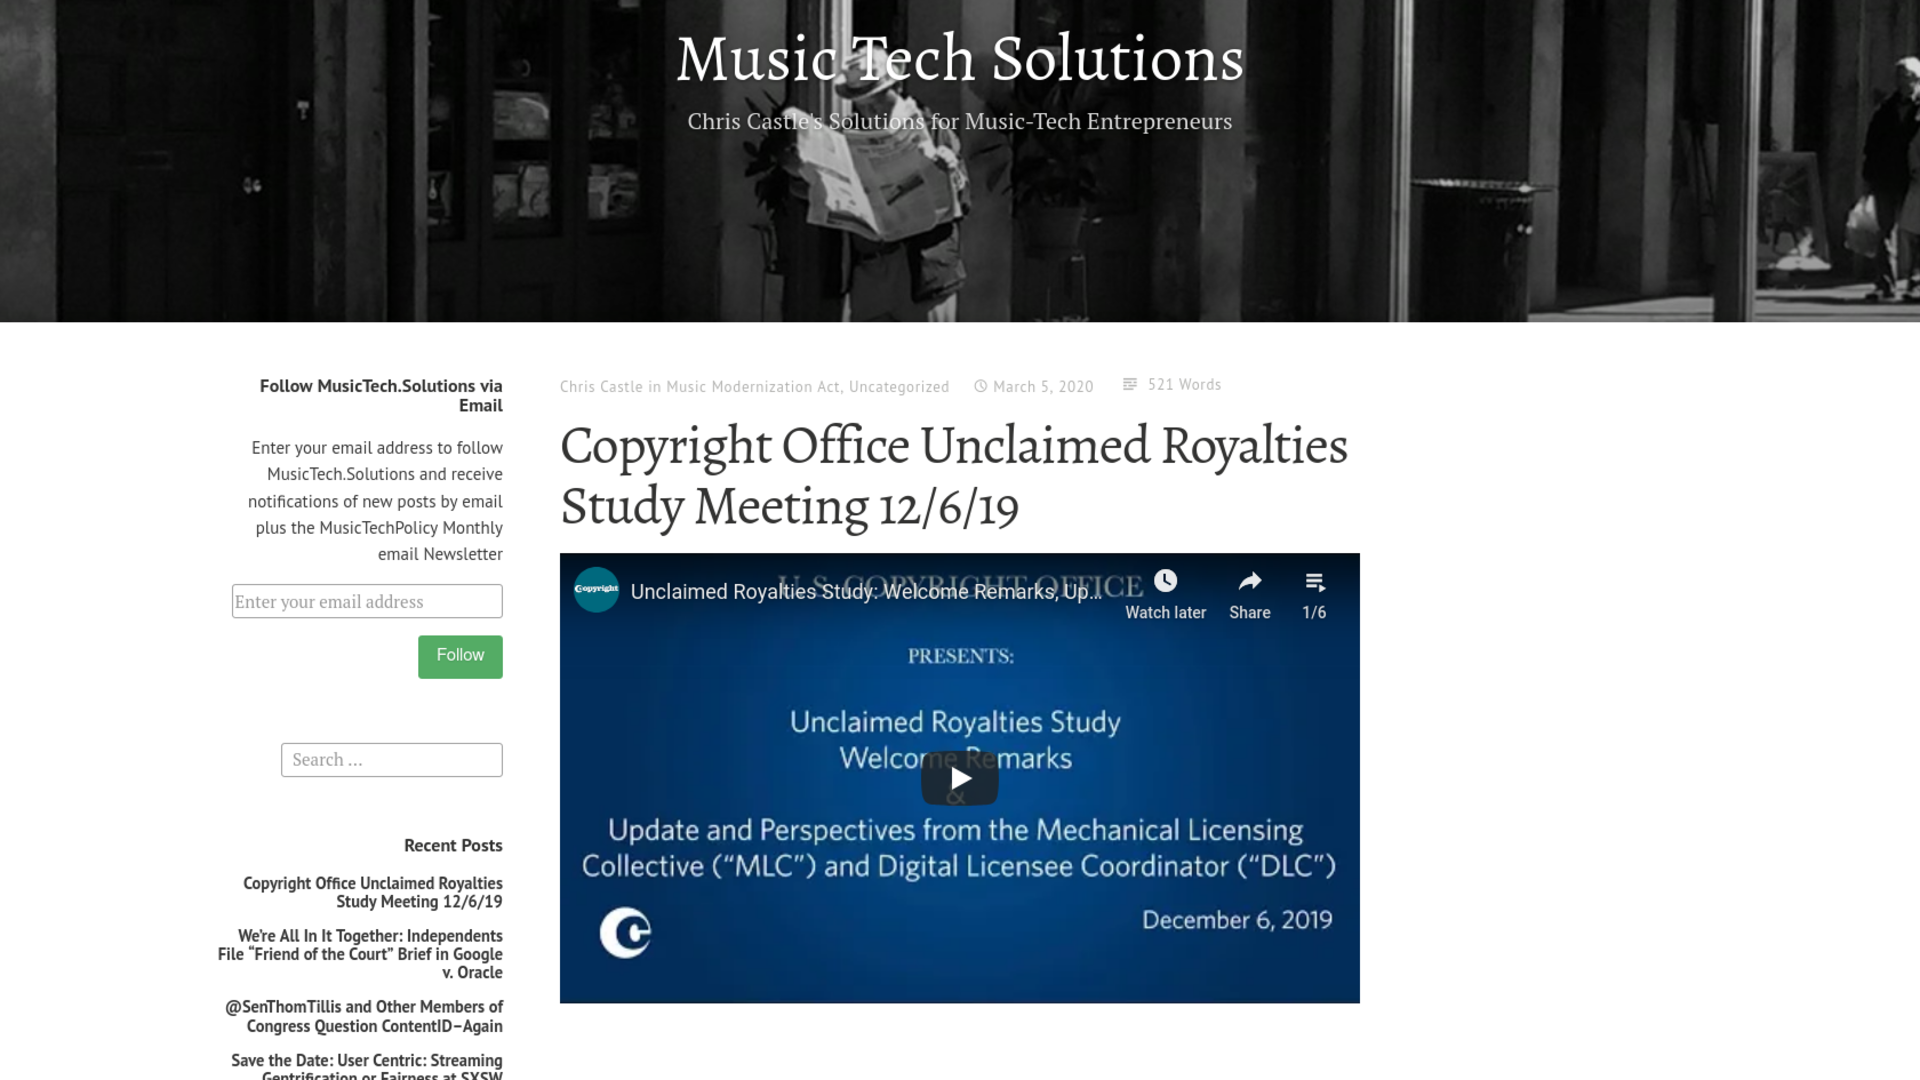 Fairness Rocks News Copyright Office Unclaimed Royalties Study Meeting 12/6/19